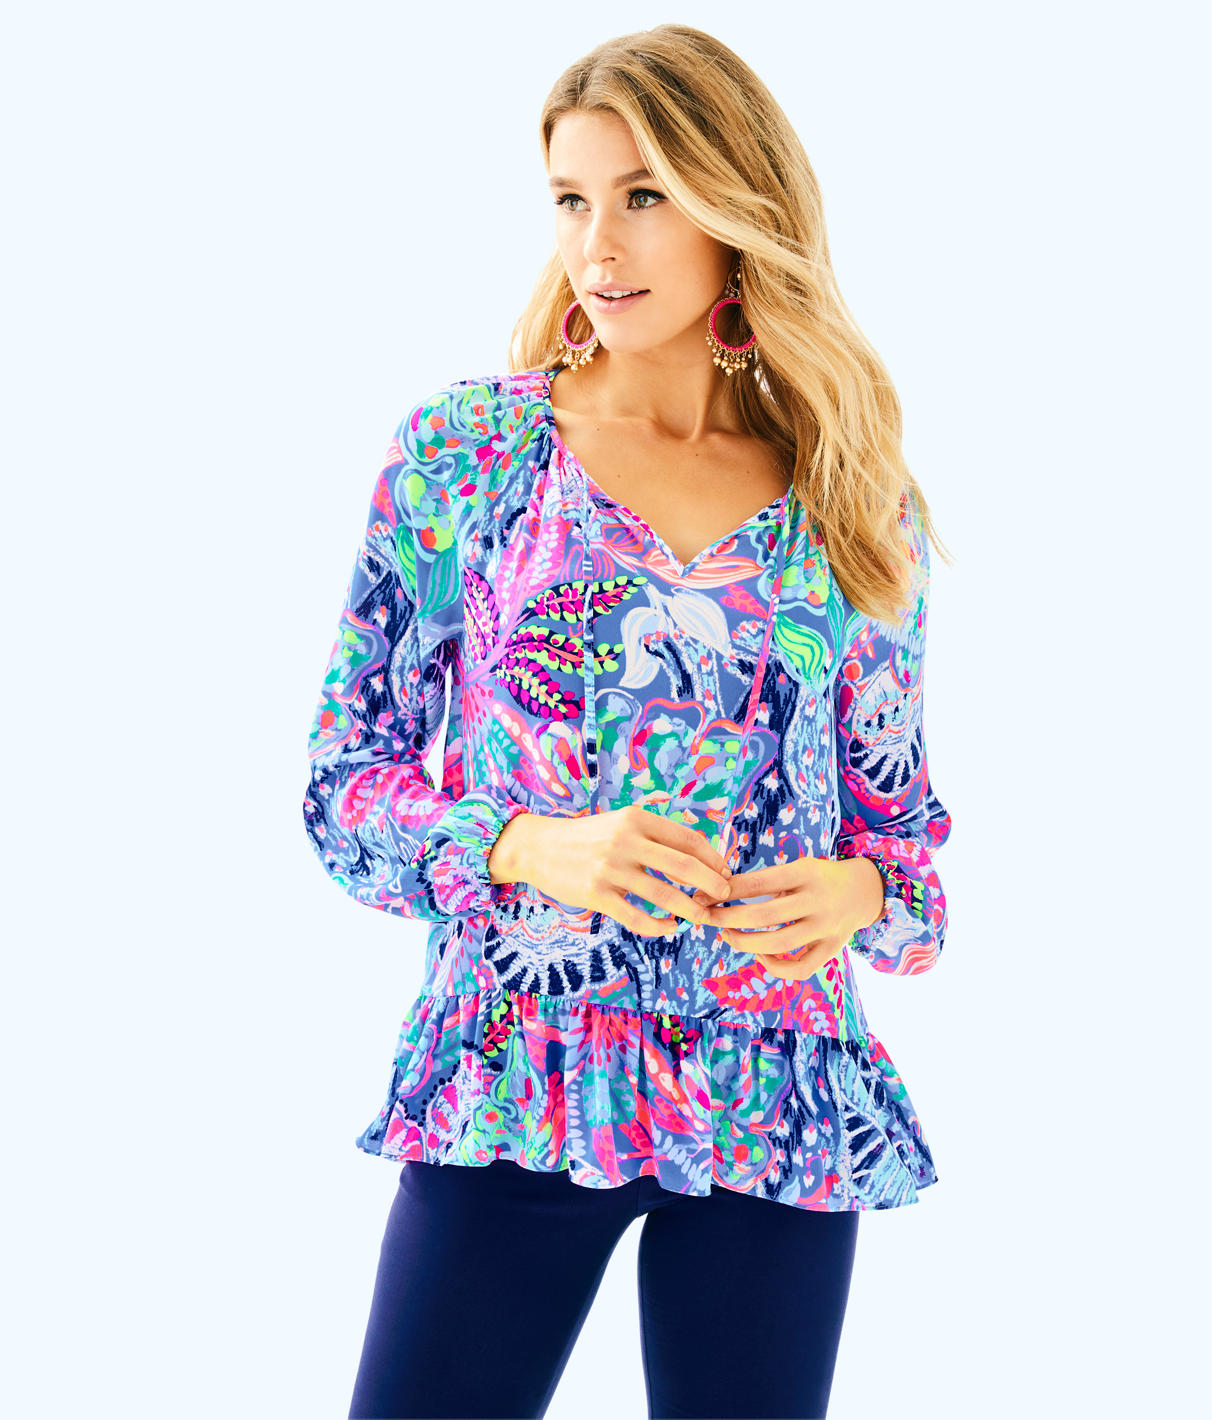 Lilly Pulitzer Lilly Pulitzer Womens Tensley Top